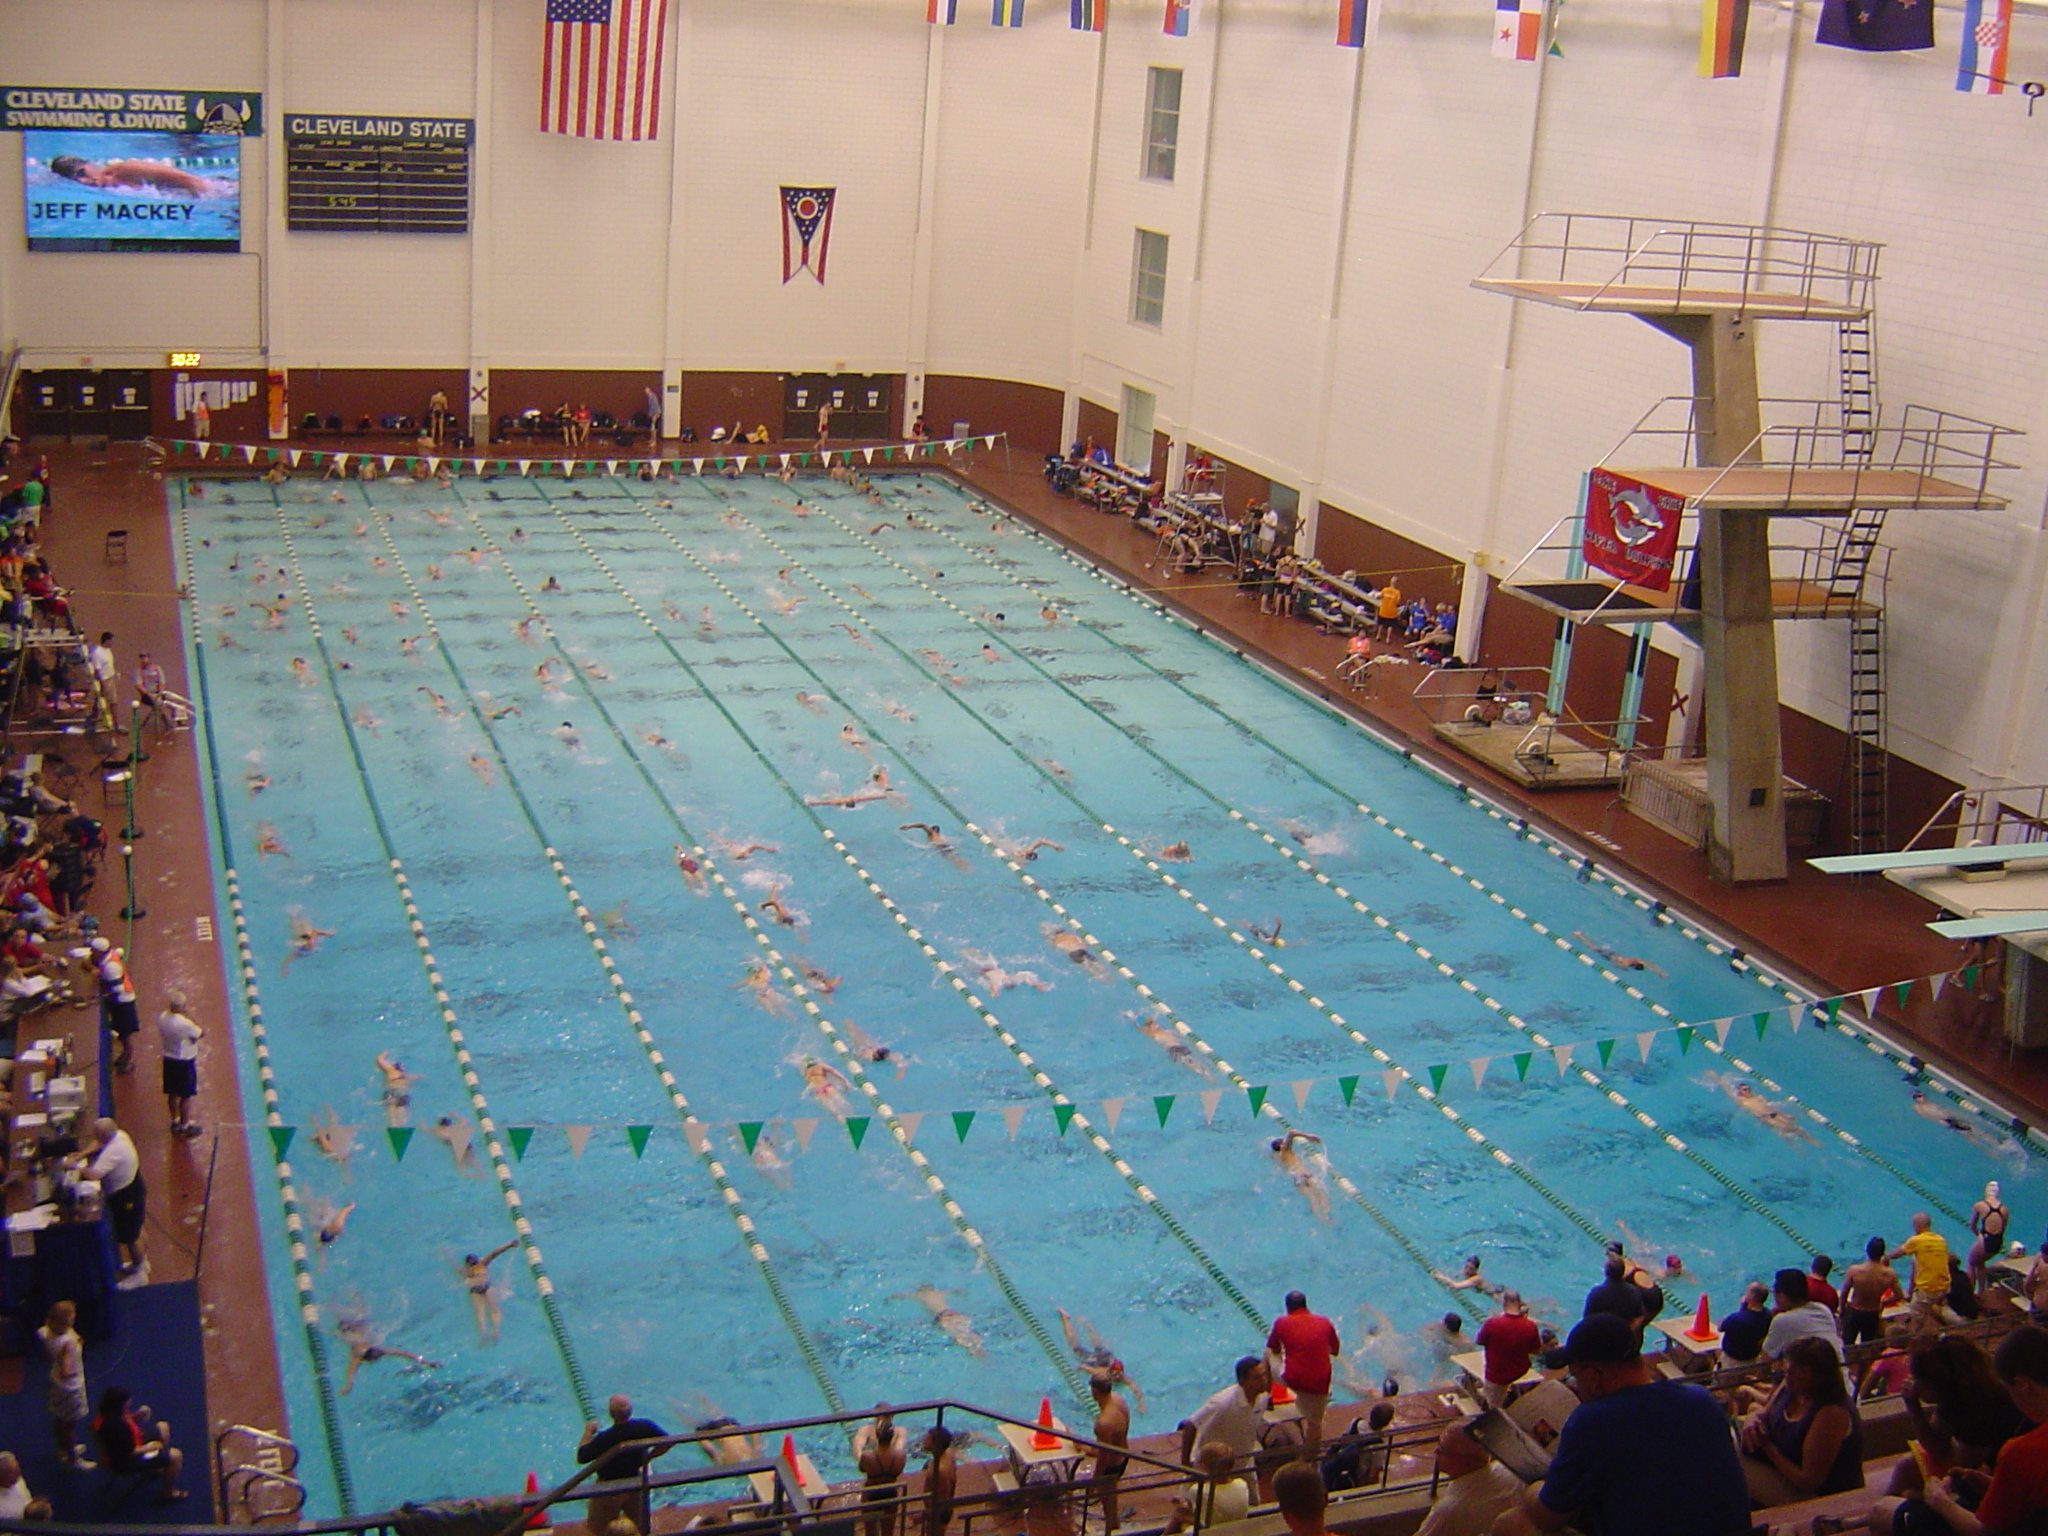 Cleveland State's really nice pool